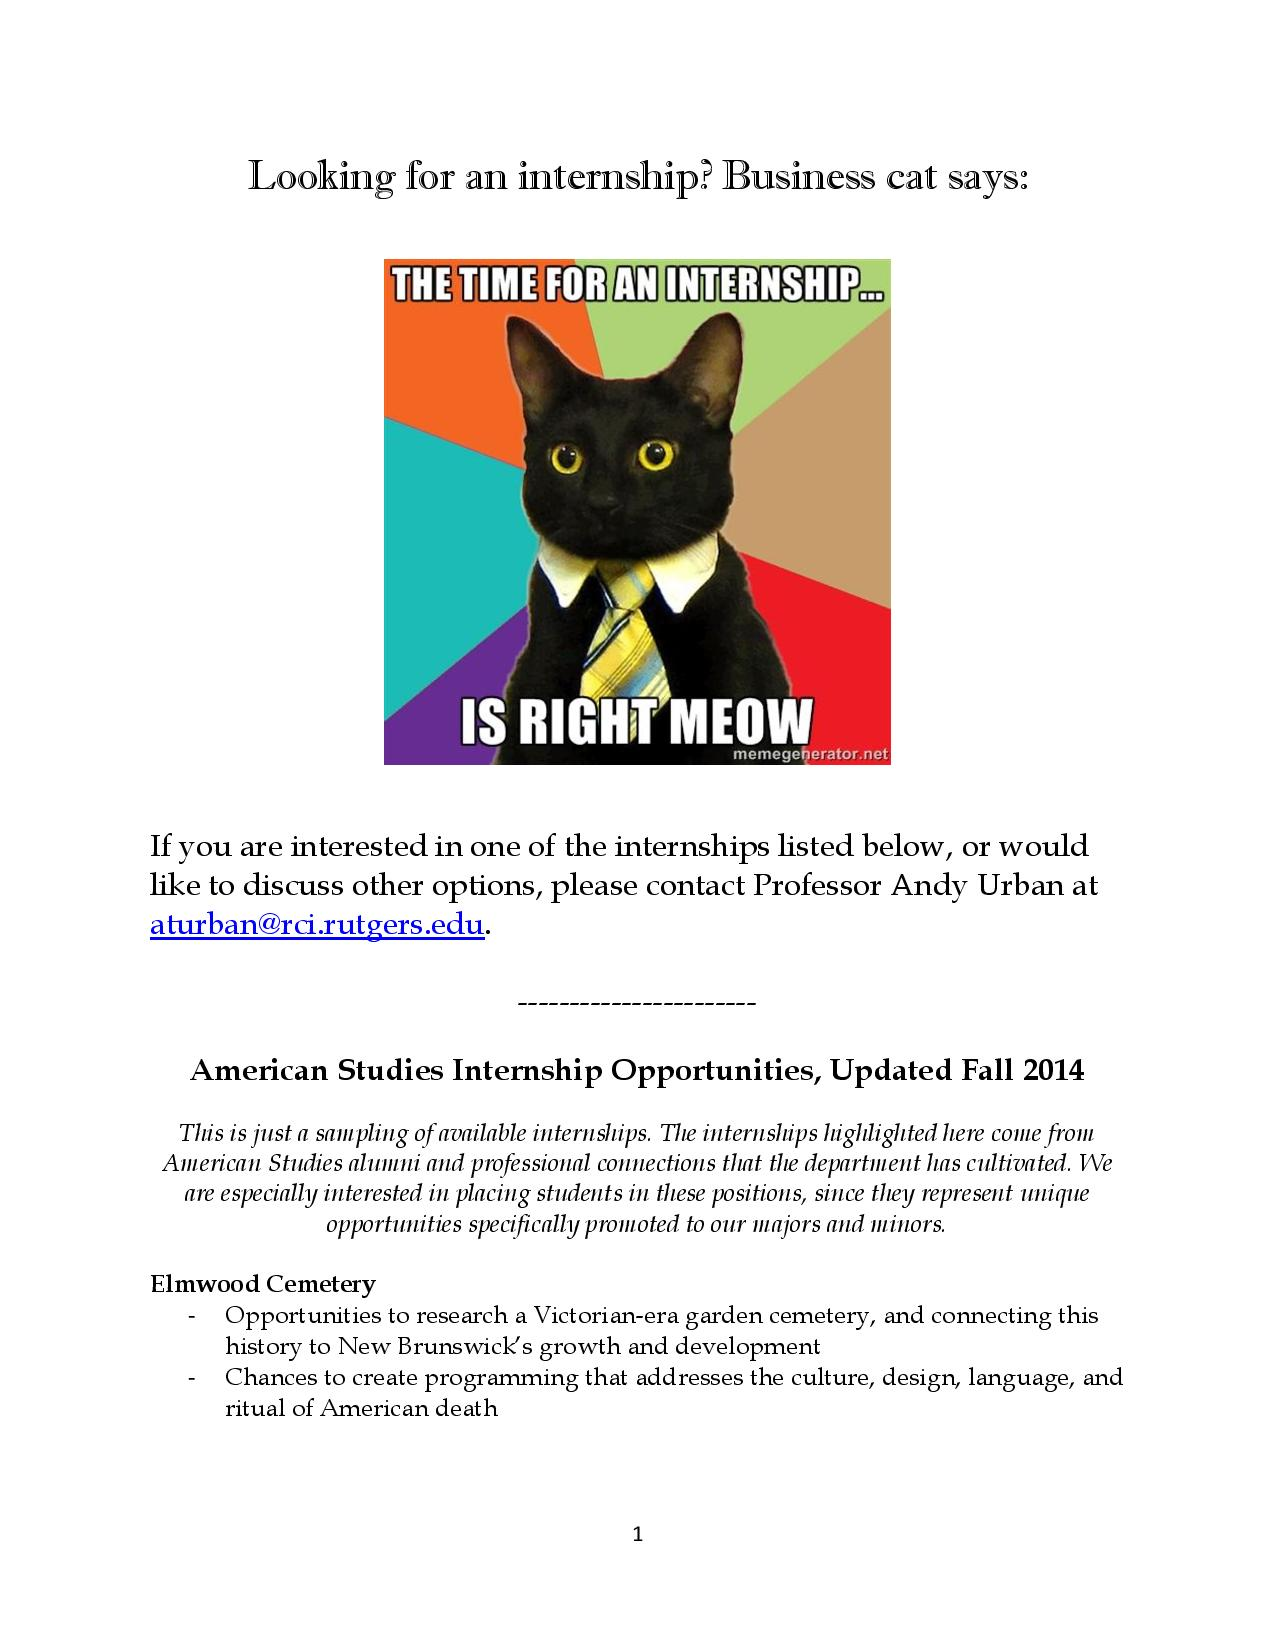 Internships Career Night Flyer 10.28.14-page-0011